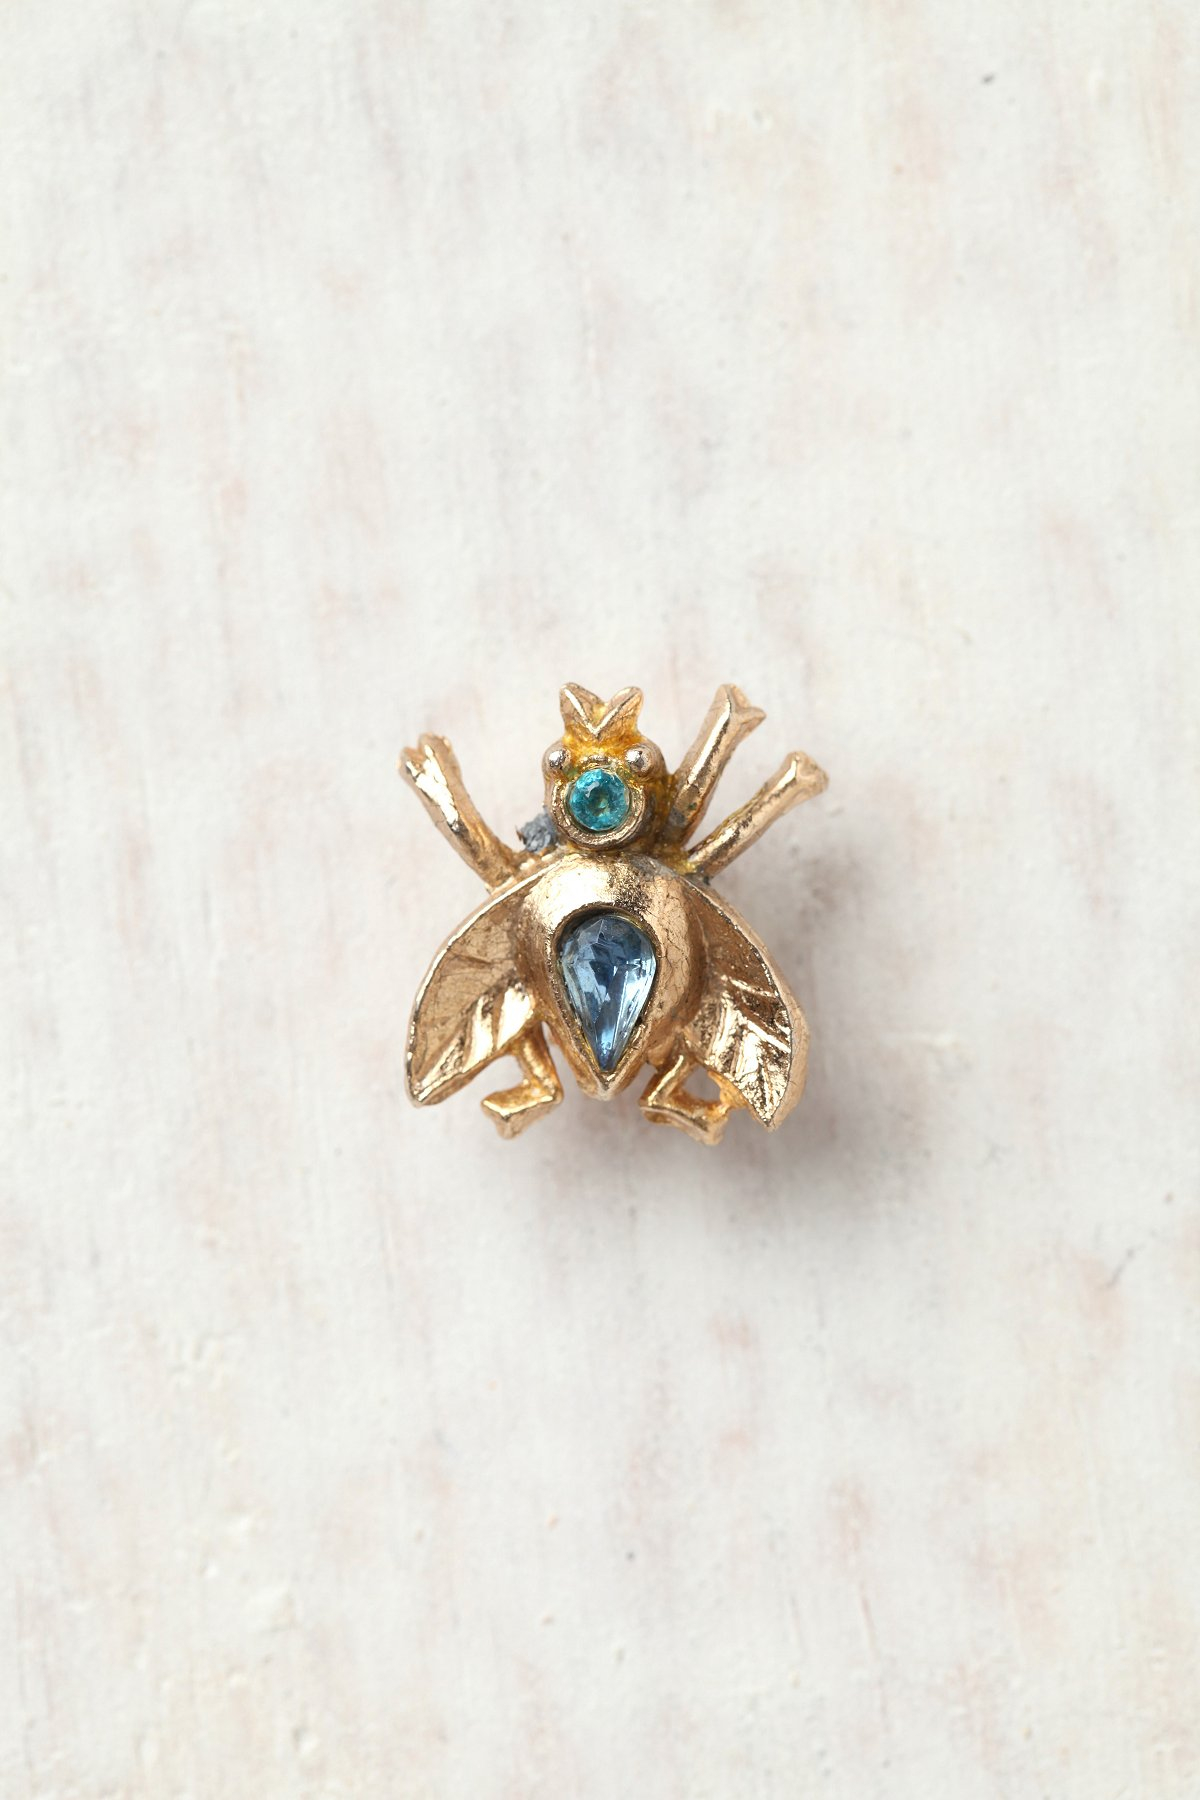 Vintage 1970s Tiny Bee Pin